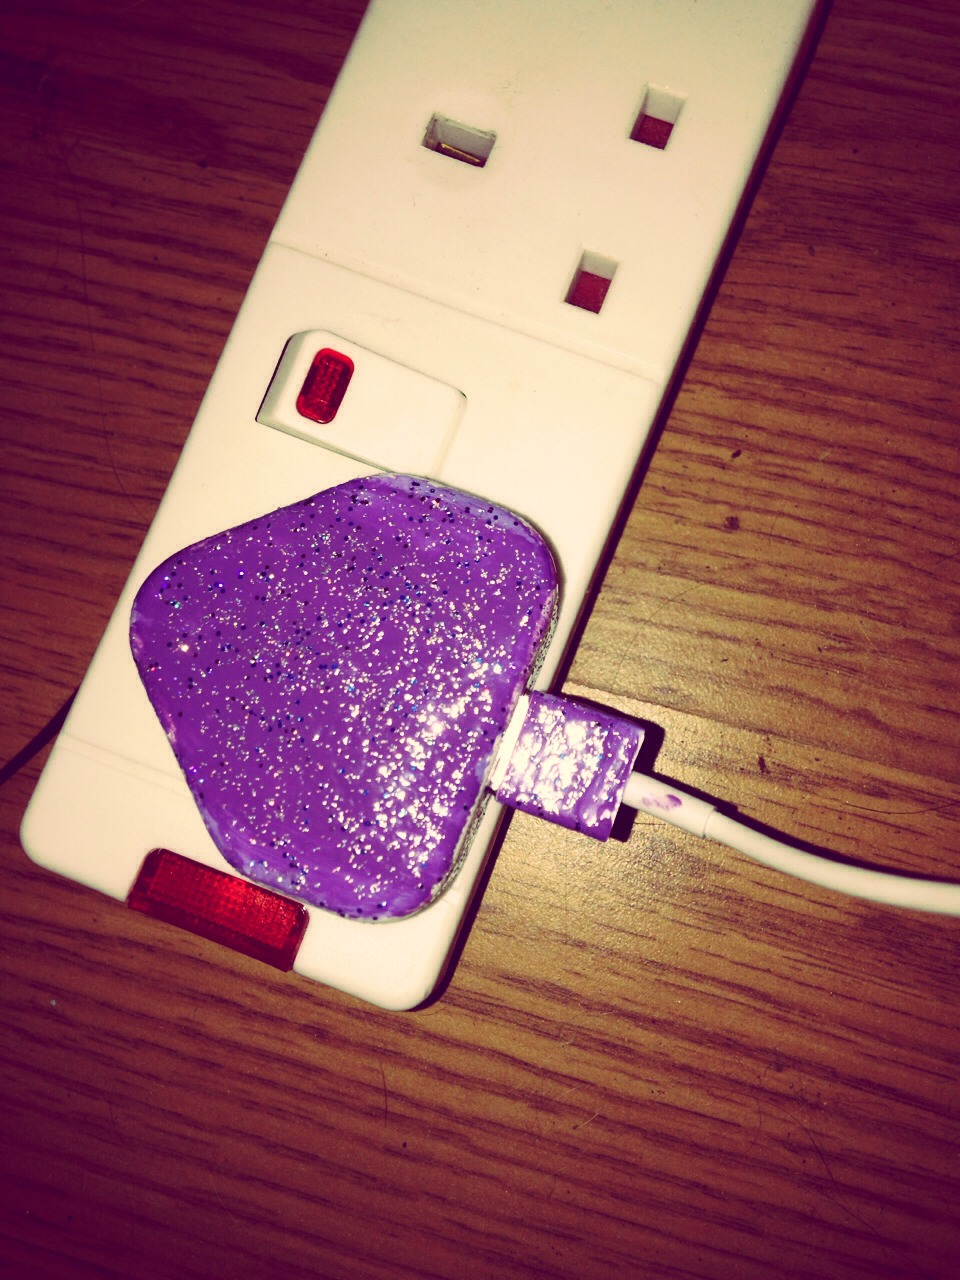 Just paint your iPhone charger with nail polish. You can paint it any colour or design! This was you can identify your charger and make it personal to you!  Please like and save✌️